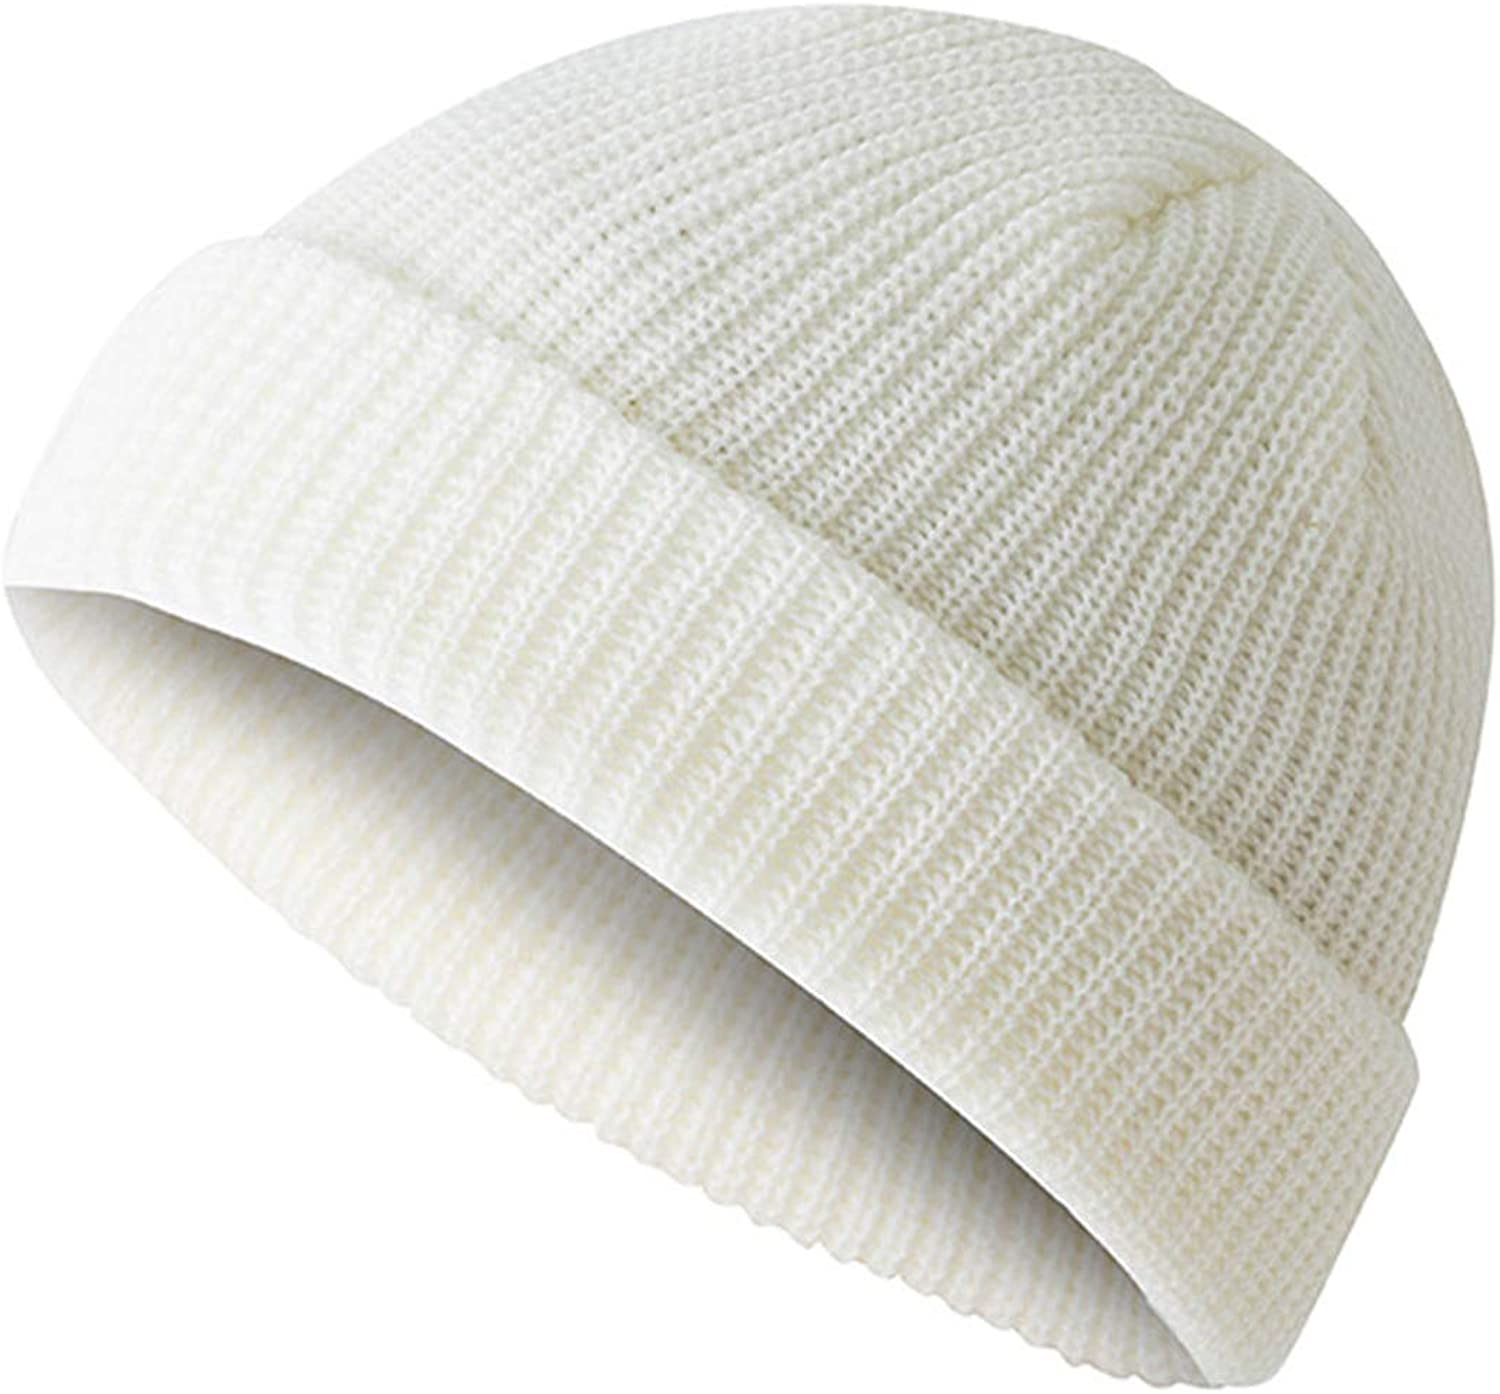 Tekenizyc Beanies Woolen Hats Men Women Benny Hats Spring and Autumn and Winter Brimless Urinal Cap Colorful and Warm